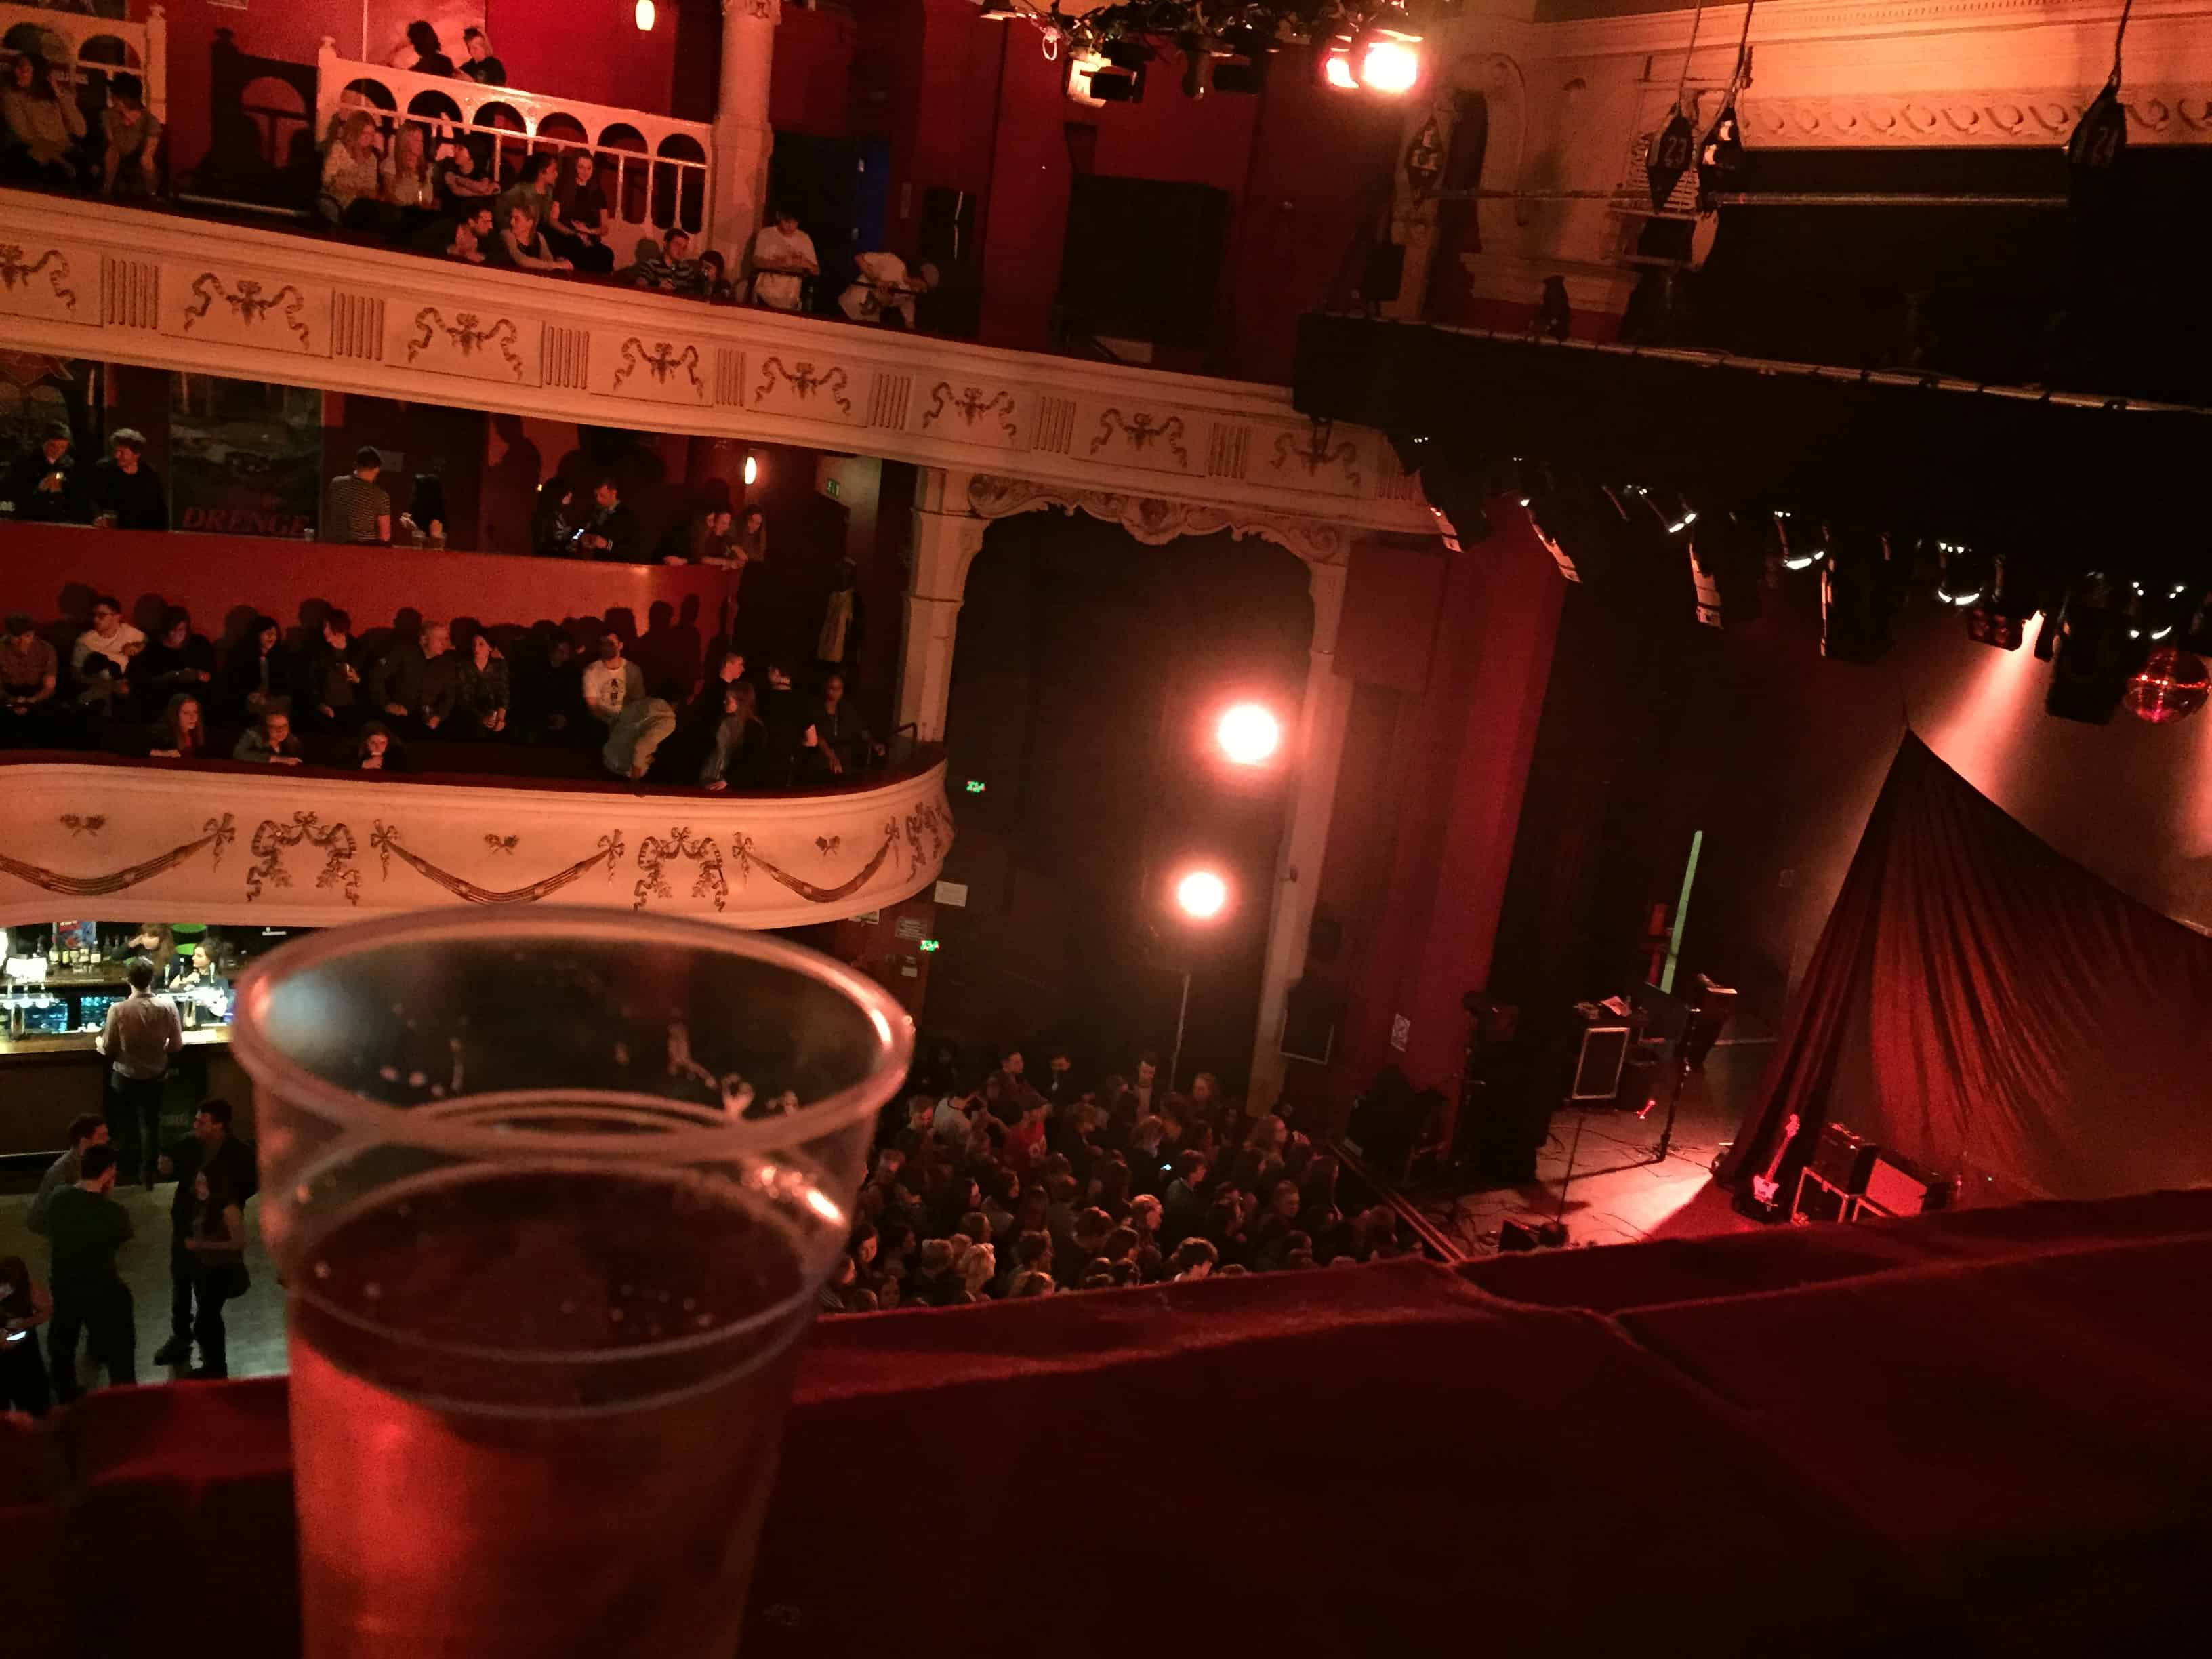 En pint & koncert i Shepherds Bush Empire